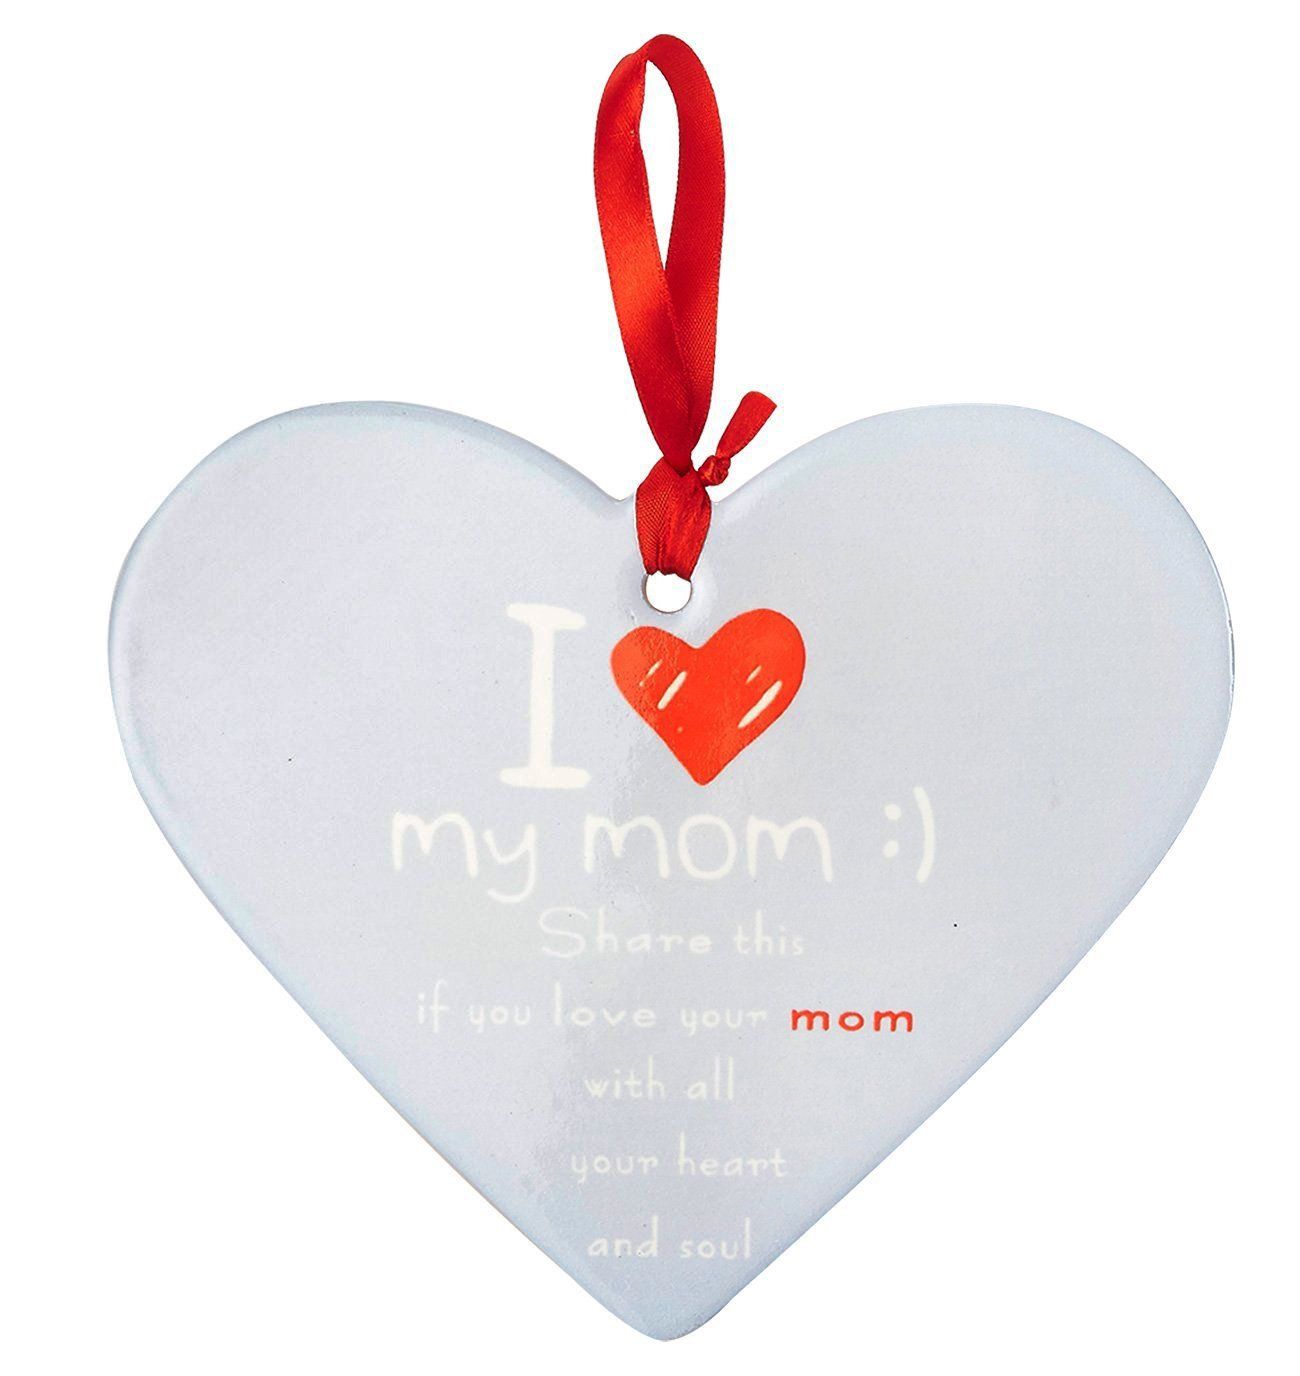 Blue I Love My Mom Plaque in Heart Shape 7.5 x 0.25 x 6.25 Inches Juvale Ceramic Plaque Wall Hanging Sign